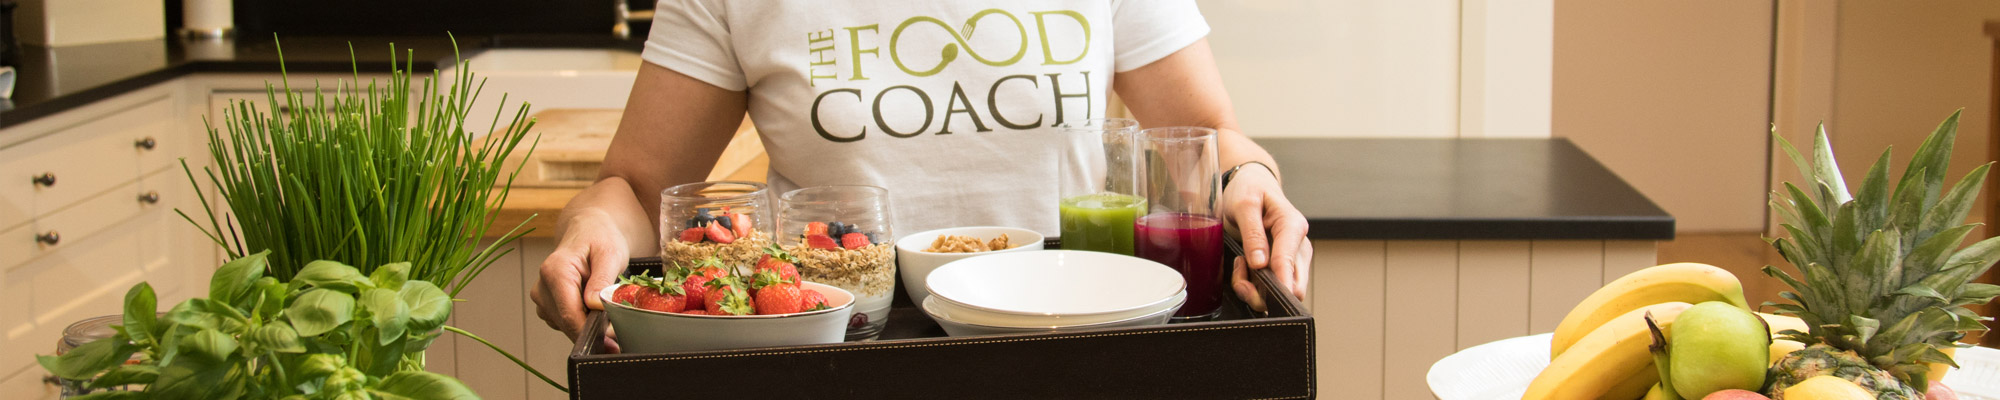 Contact The Food Coach